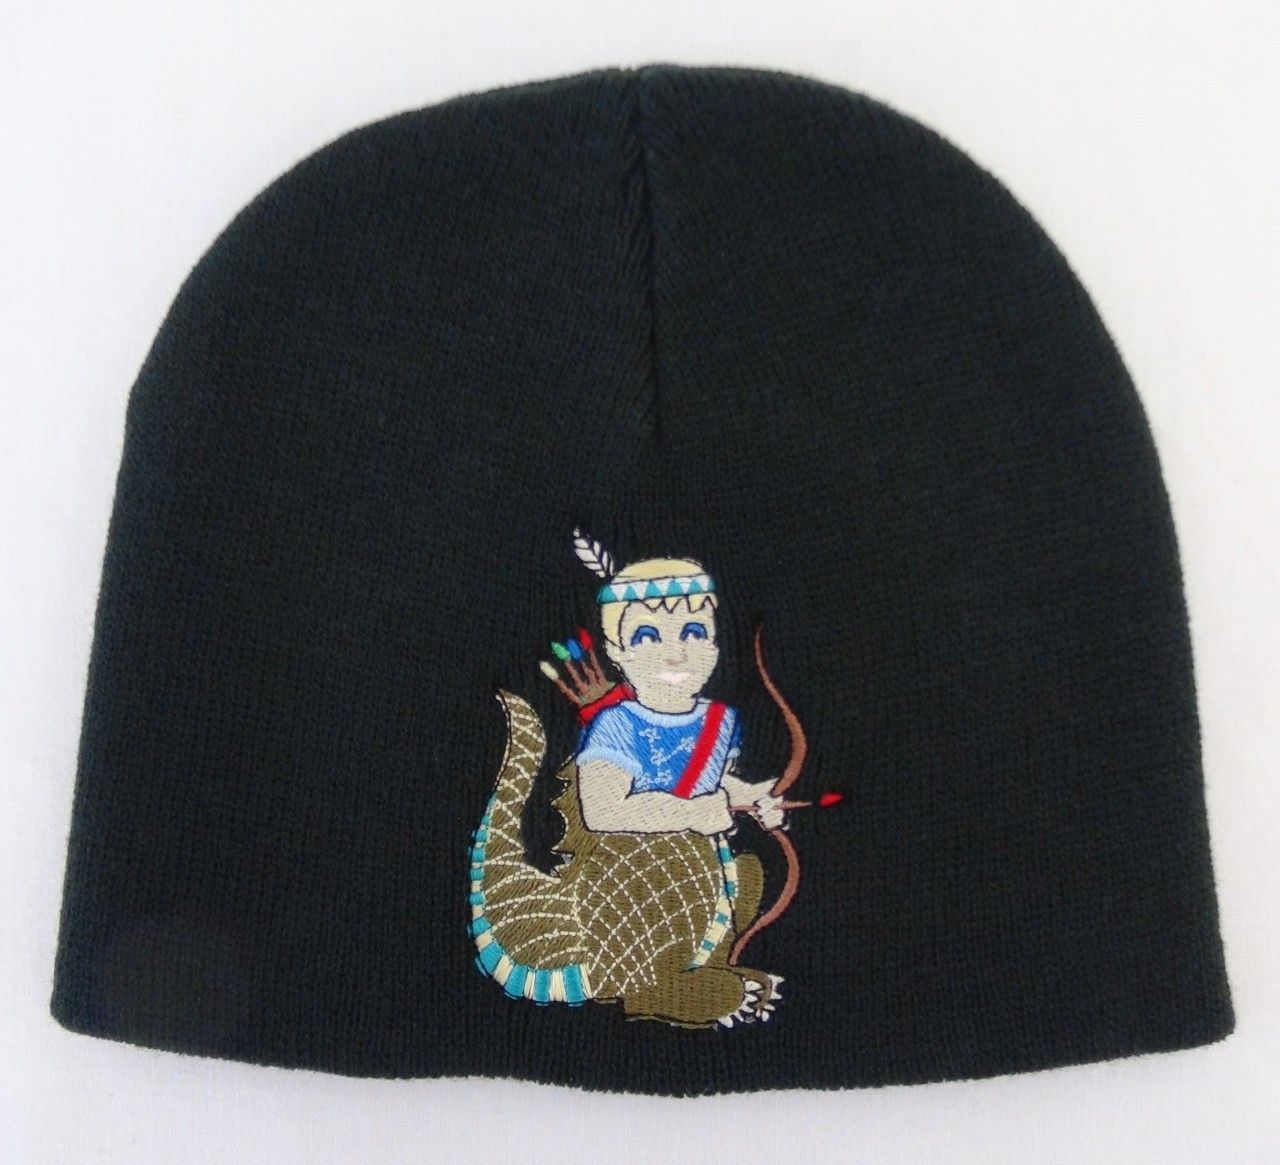 MALABAGOO - COURAGEOUS DAVE - Embroidered Black Knit Cap, $22.00 (https://store-ah1eo2nl.mybigcommerce.com/courageous-dave-embroidered-black-knit-cap/)